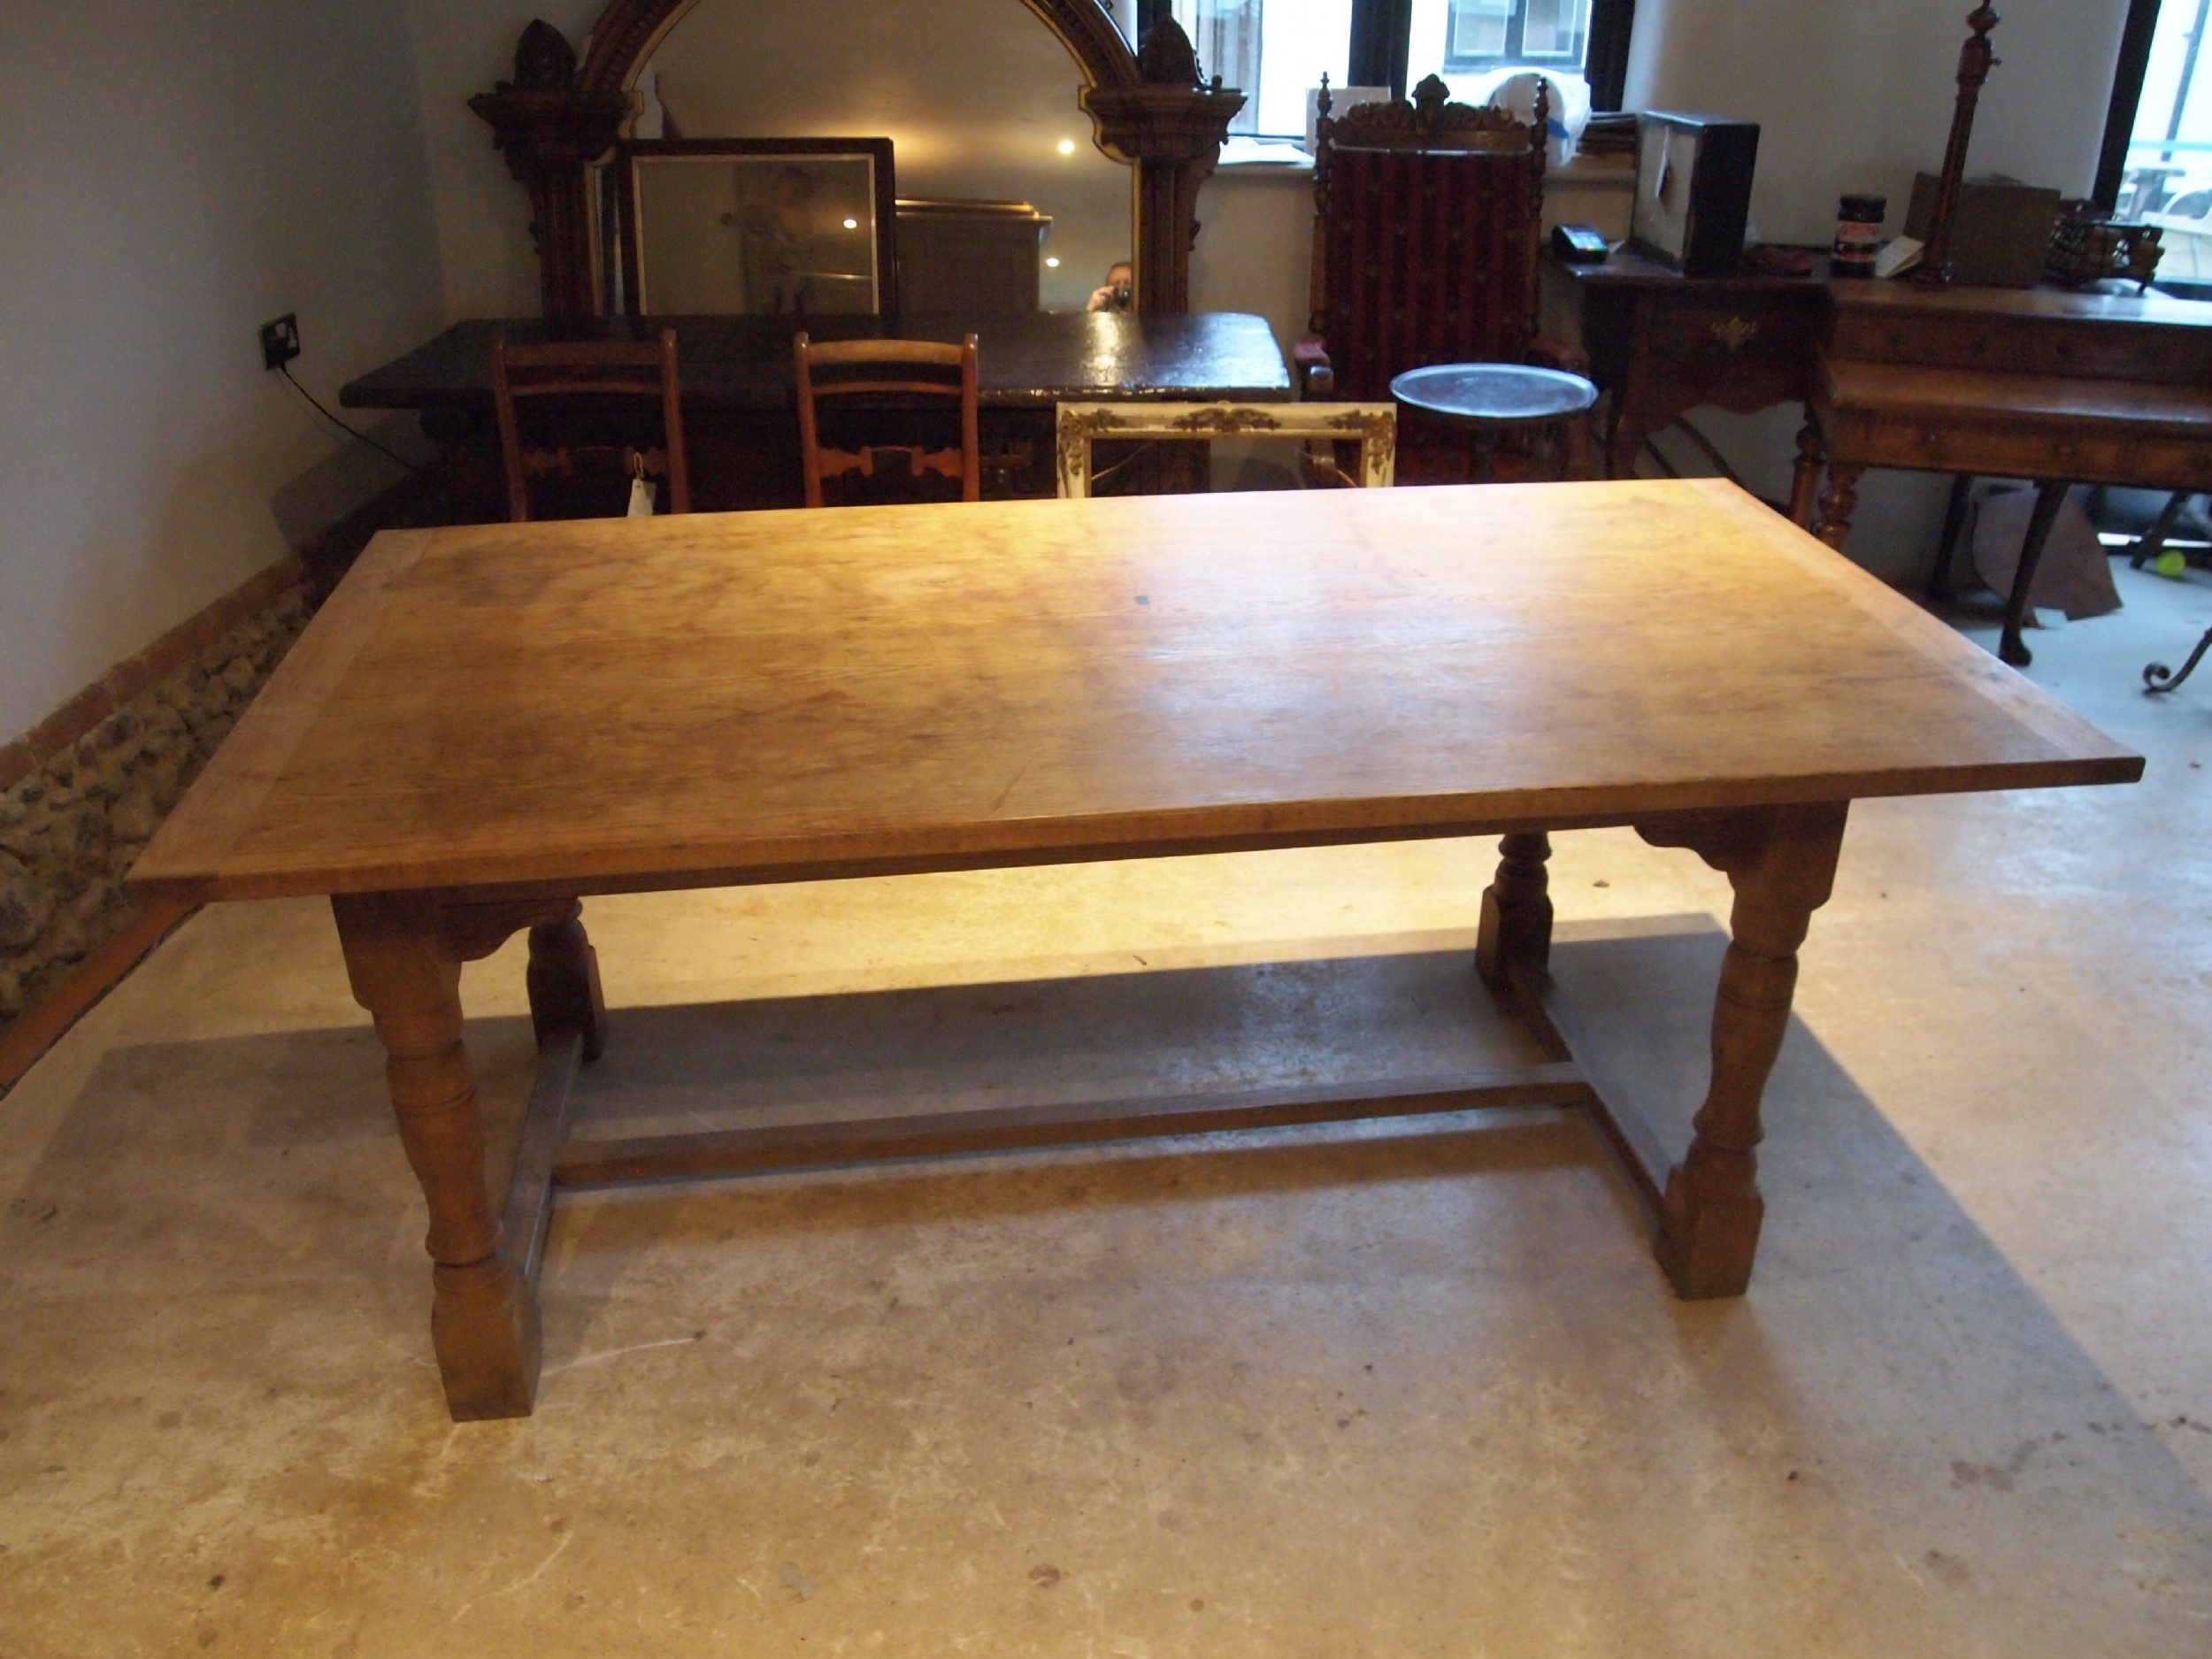 table oak refectory farmhouse dining rustic c1920